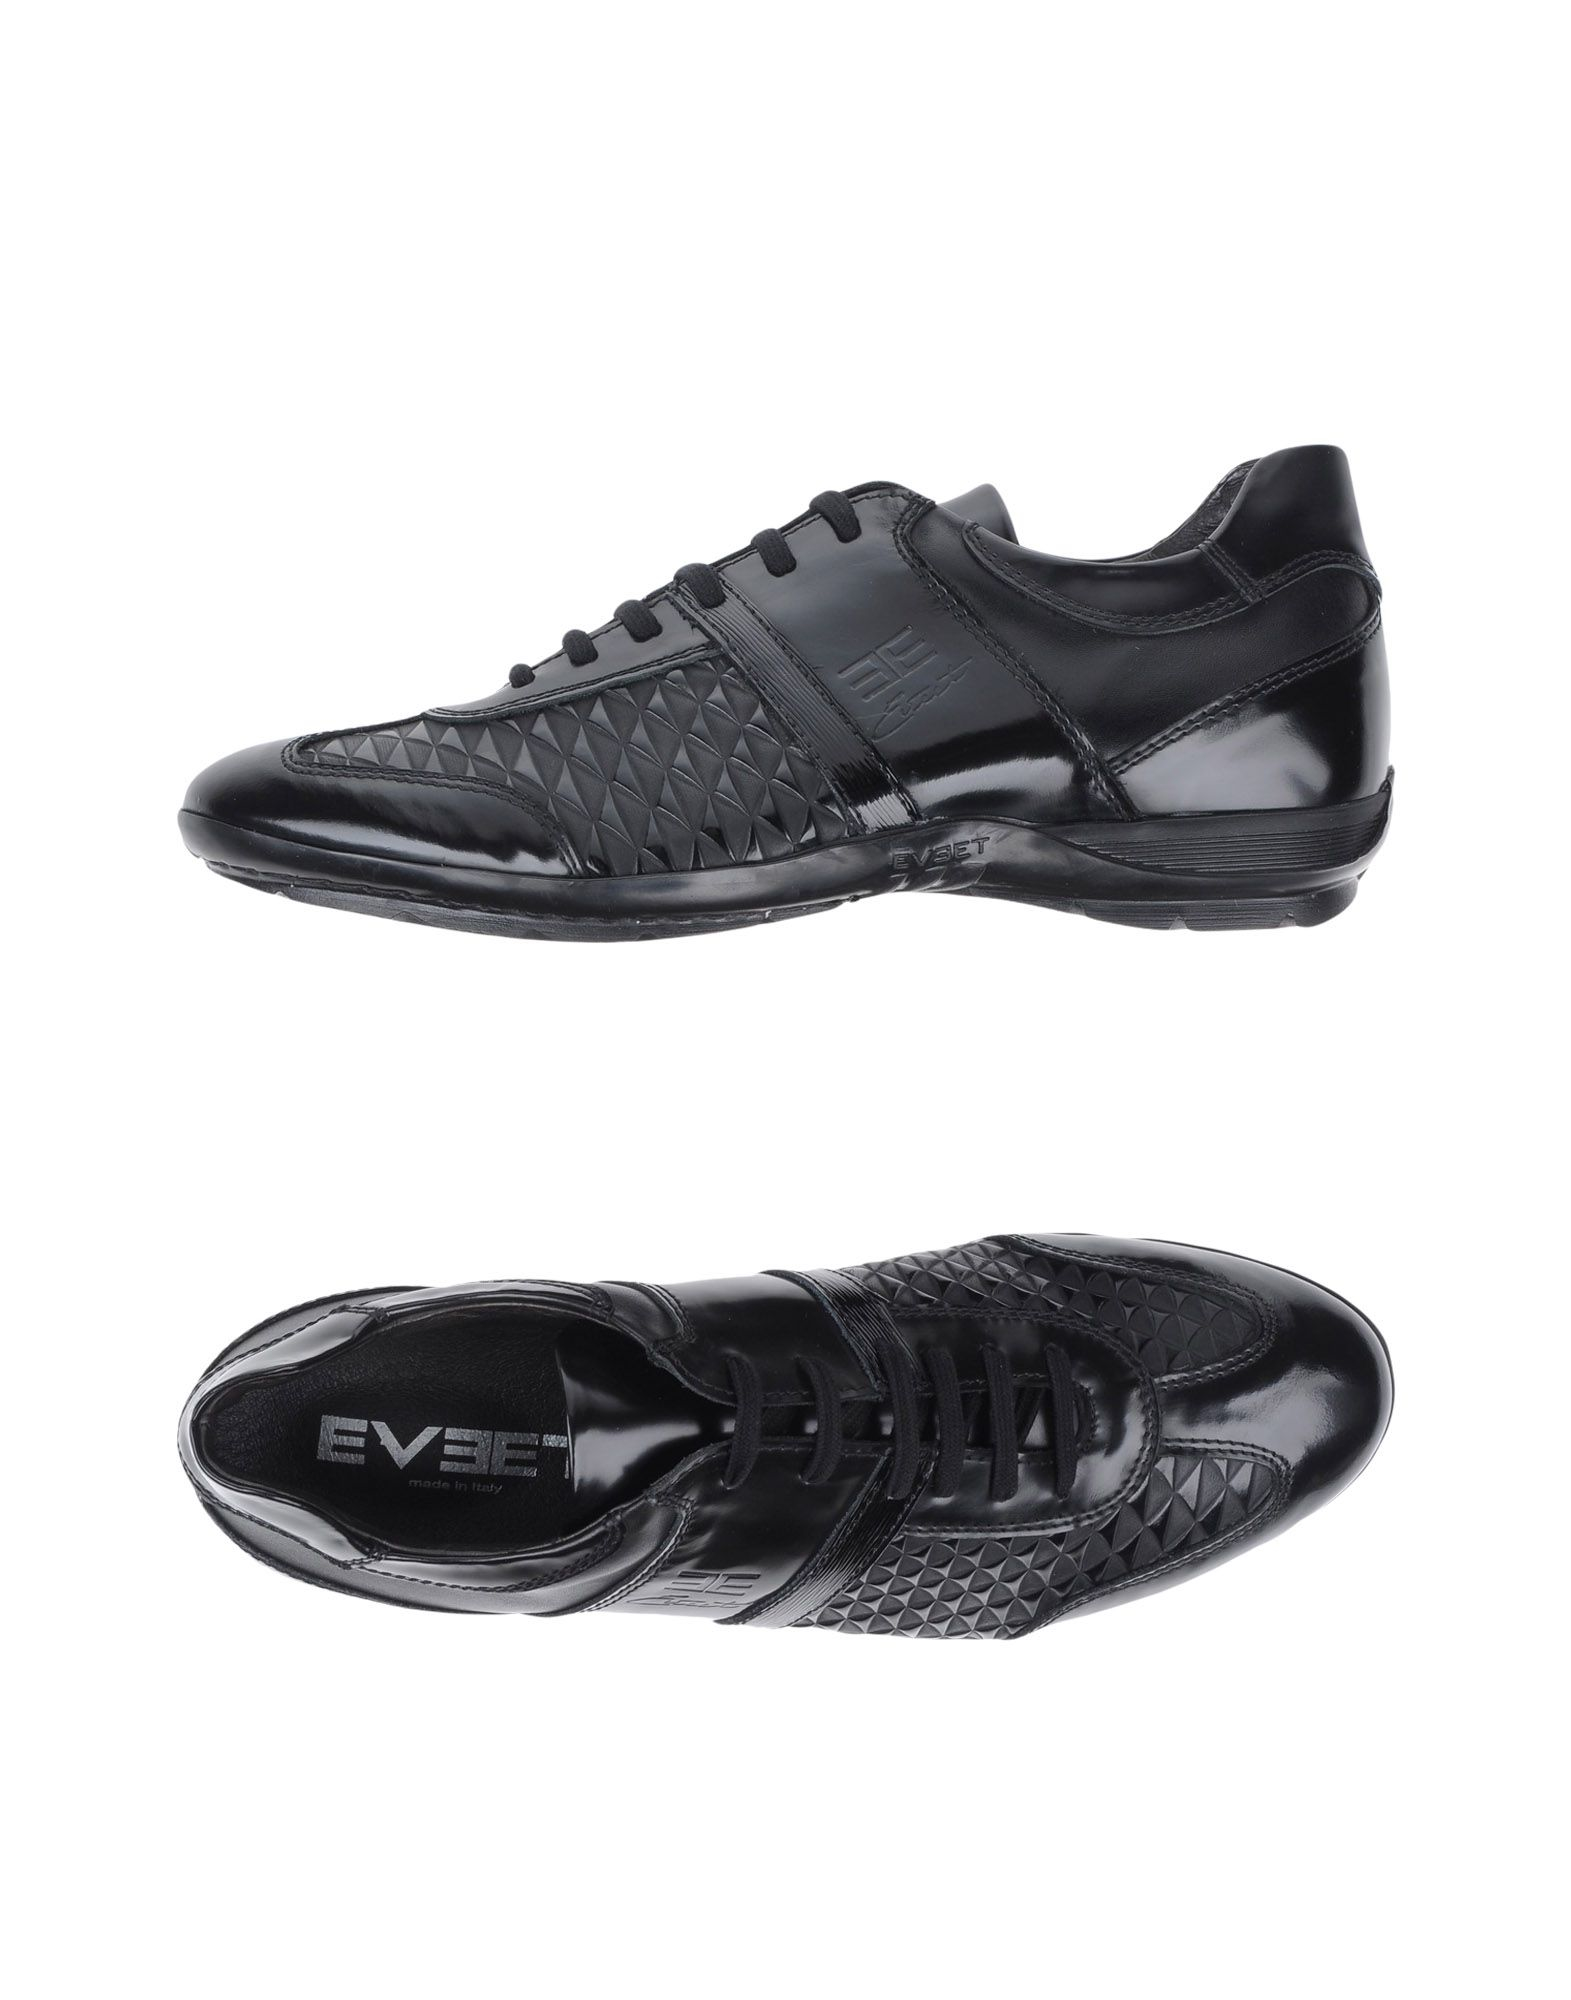 brand new 2b1d8 74e1a Eveet Black Lace-up Shoes for men